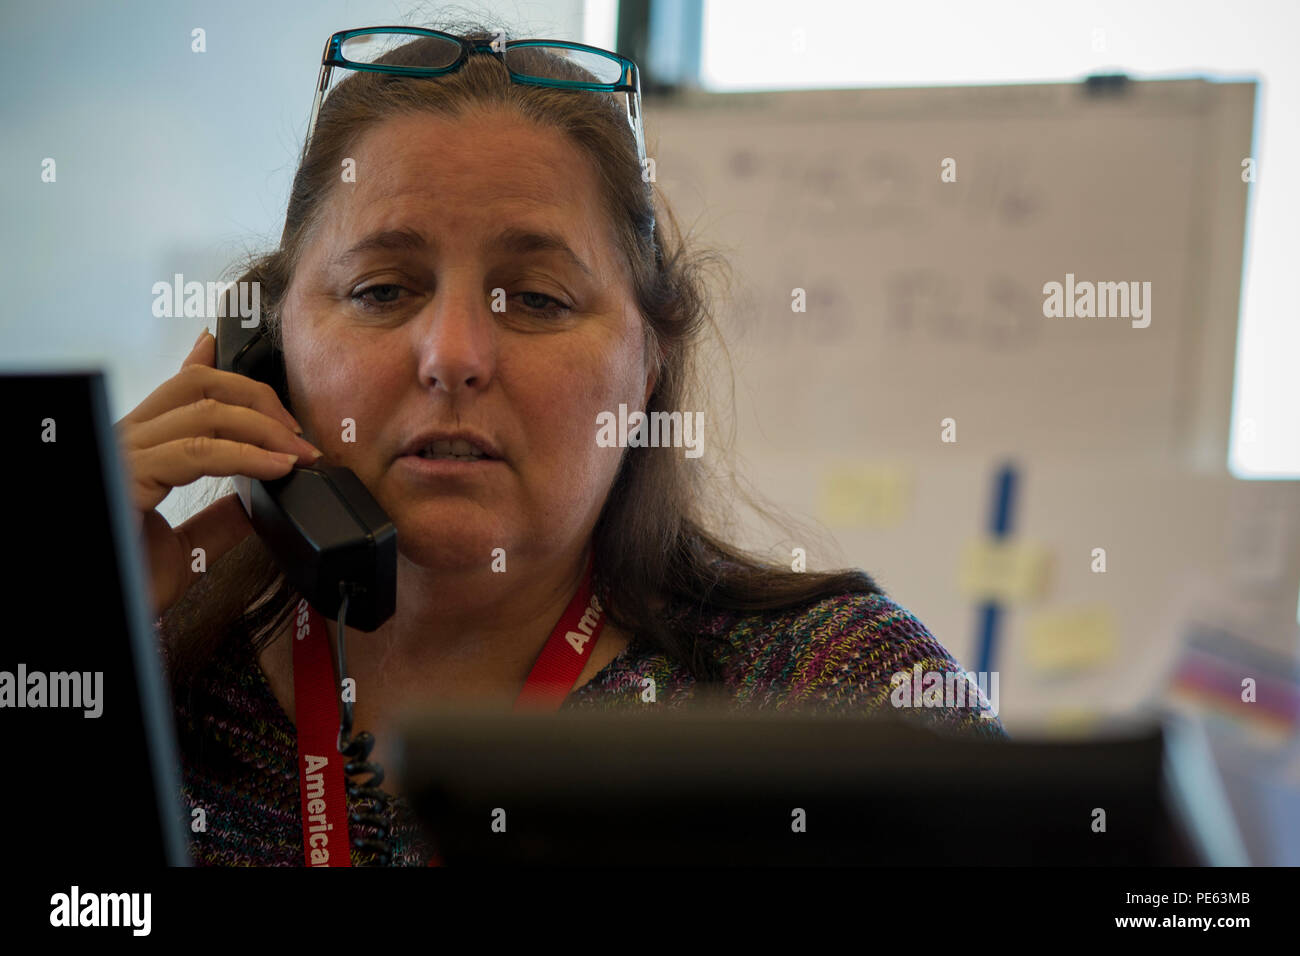 Terry Kornahrens, disaster assessment lead for the Palmetto SC Region of the American Red Cross, discusses flood relief efforts at a Red Cross emergency operations center Oct. 8, 2015, in North Charleston, S.C. The historic flooding, which caused damage, destruction and death throughout South Carolina, was the result of record-setting rainfall during what was considered a 1,000-year rain event delivered by Hurricane Joaquin as it went up the East Coast. The Palmetto SC Region of the American Red Cross provides services to residents of South Carolina including disaster relief, health and safety - Stock Image